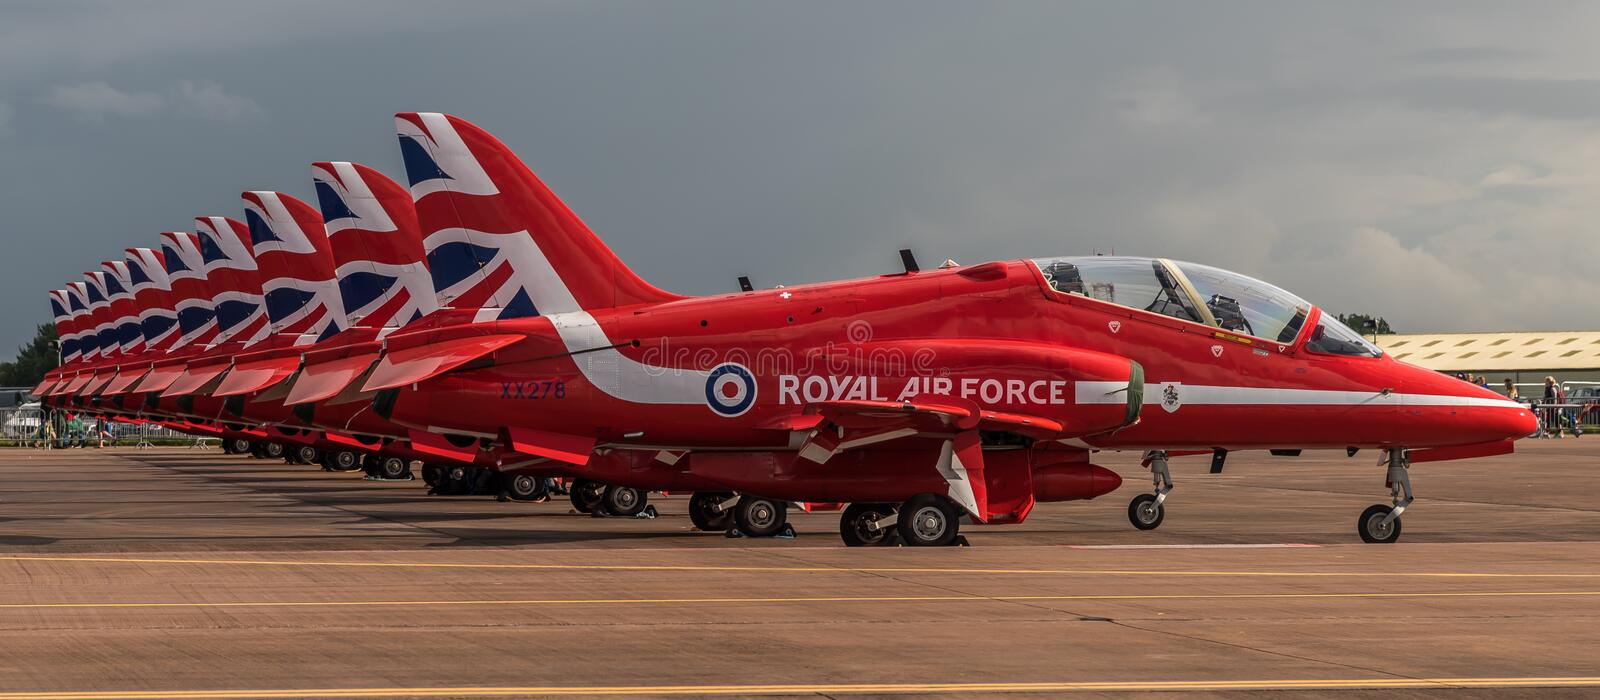 FAIRFORD, UK - JULY 10: Red Arrows Aircraft participates in the Royal International Air Tattoo Air show event July 10, 2016. FAIRFORD, UK - JULY 10: Royal Air stock photography